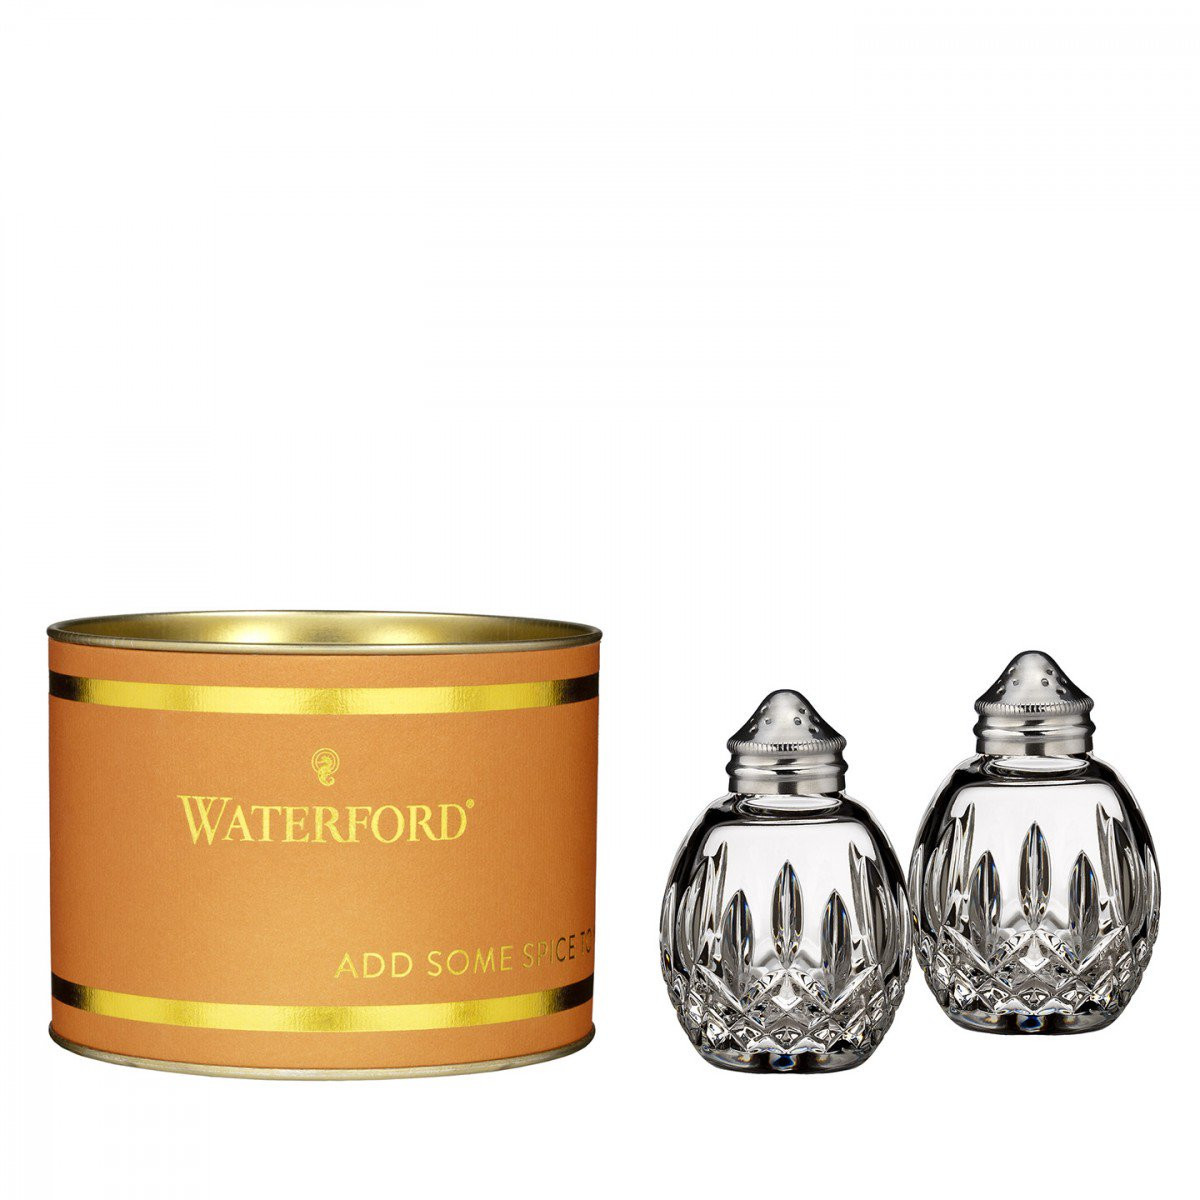 30 Famous Waterford Lismore Sugar Bud Vase 2021 free download waterford lismore sugar bud vase of waterford giftology lismore round salt and pepper set waterford for giftology lismore round salt and pepper set